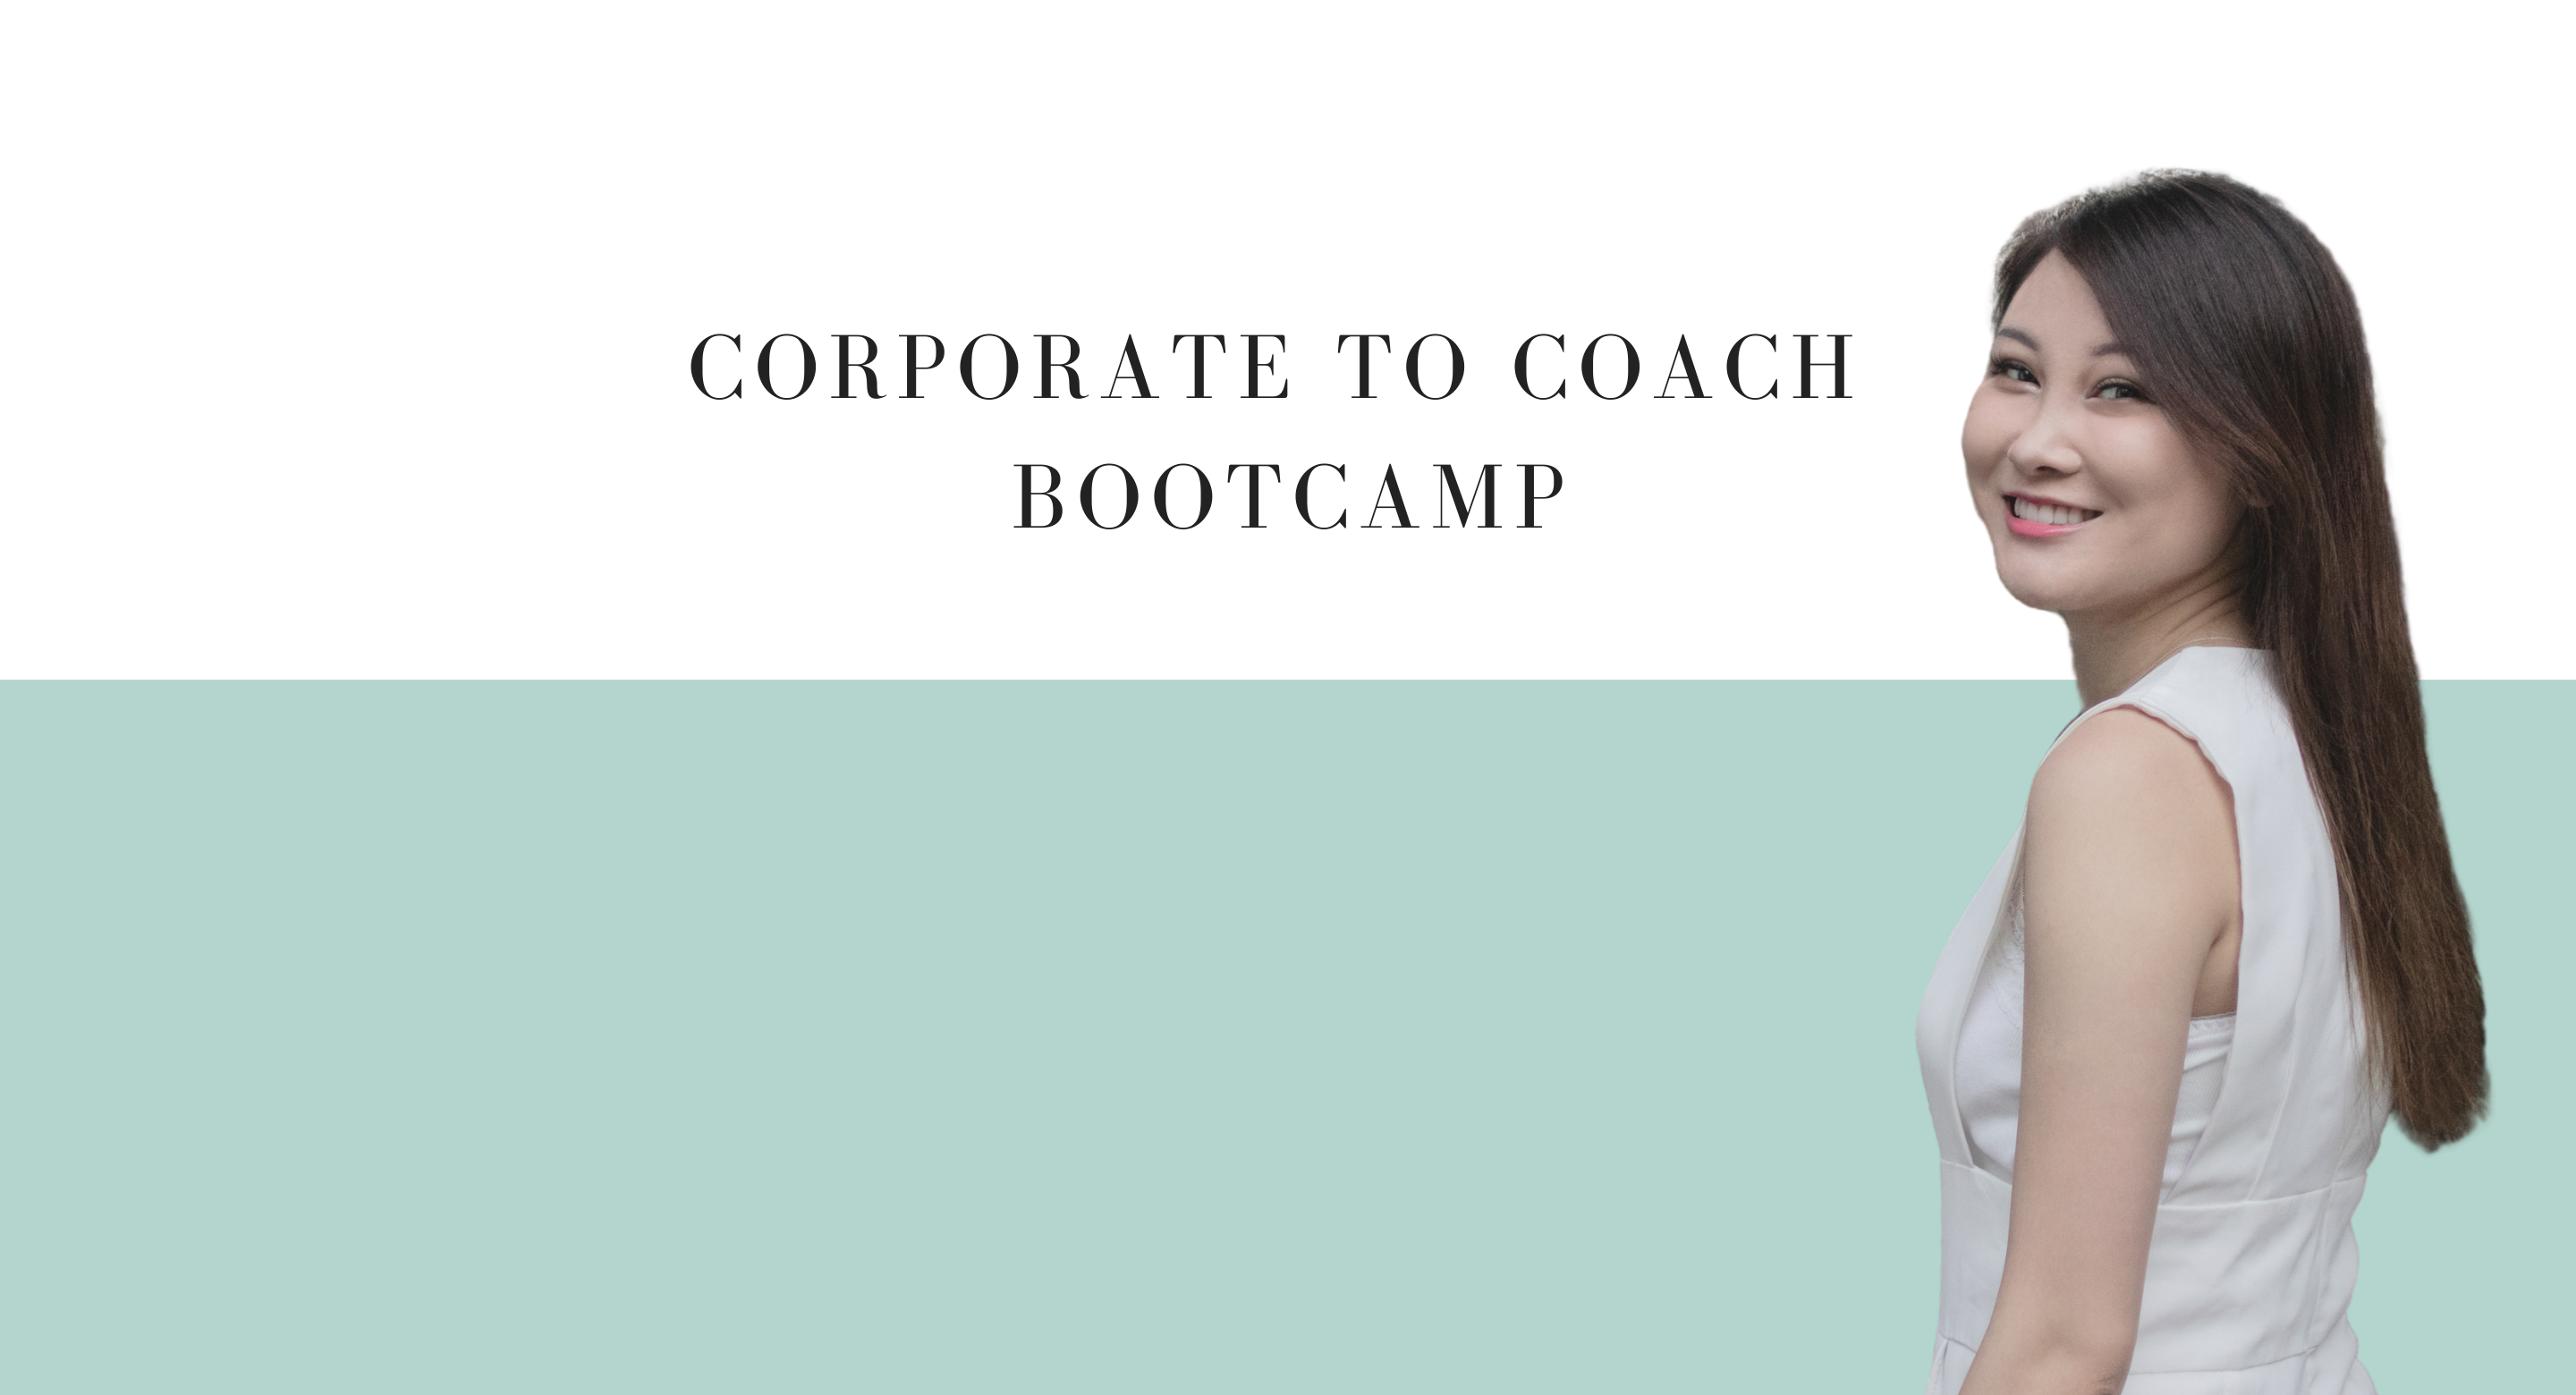 Corporate to Coach Bootcamp